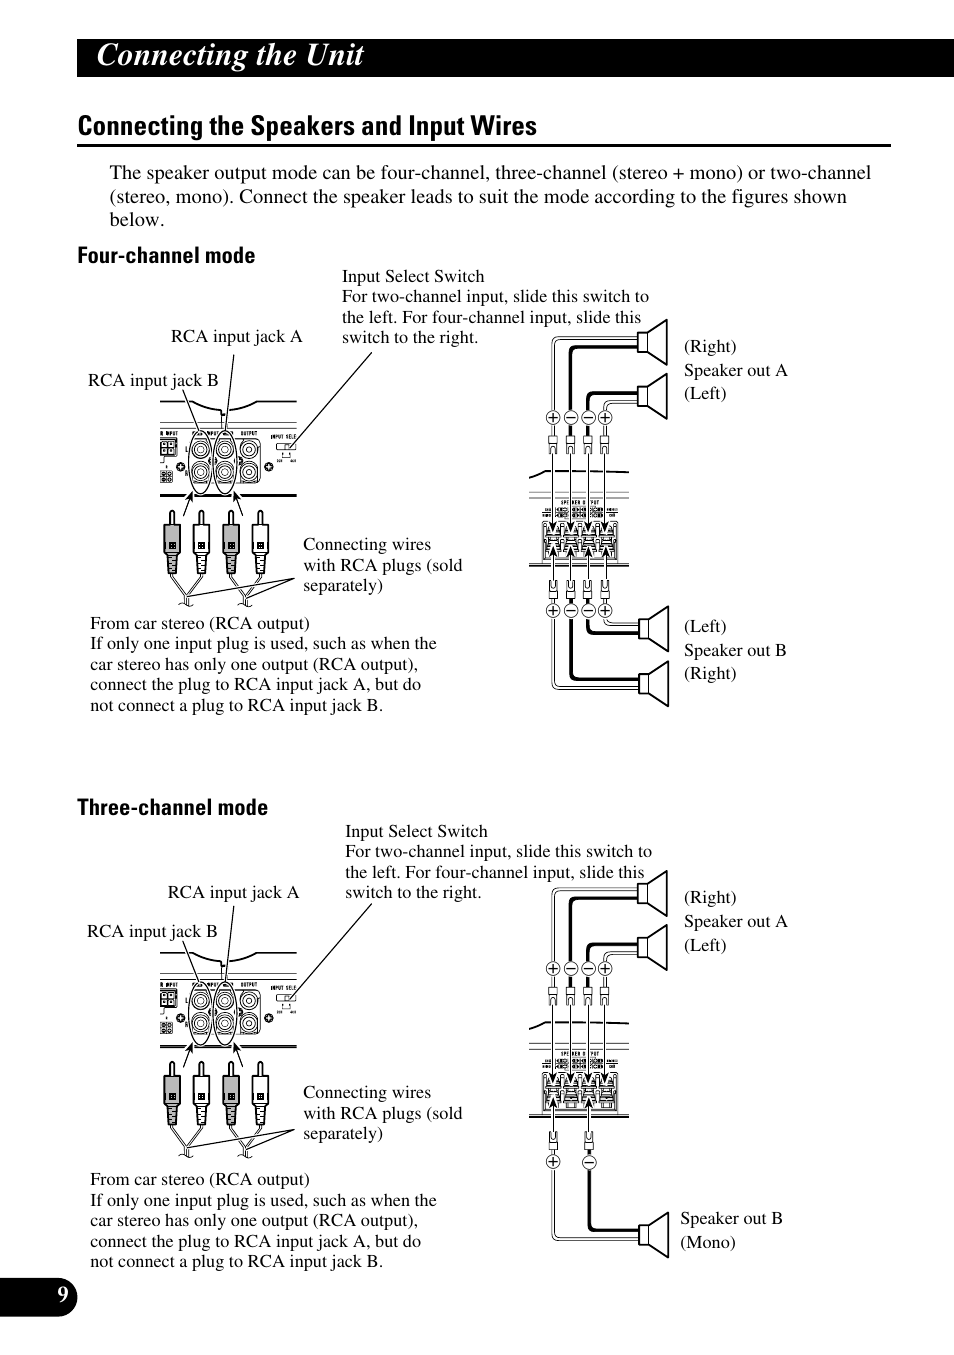 medium resolution of connecting the speakers and input wires connecting the unit four channel mode three channel mode pioneer gm 6300f user manual page 10 86